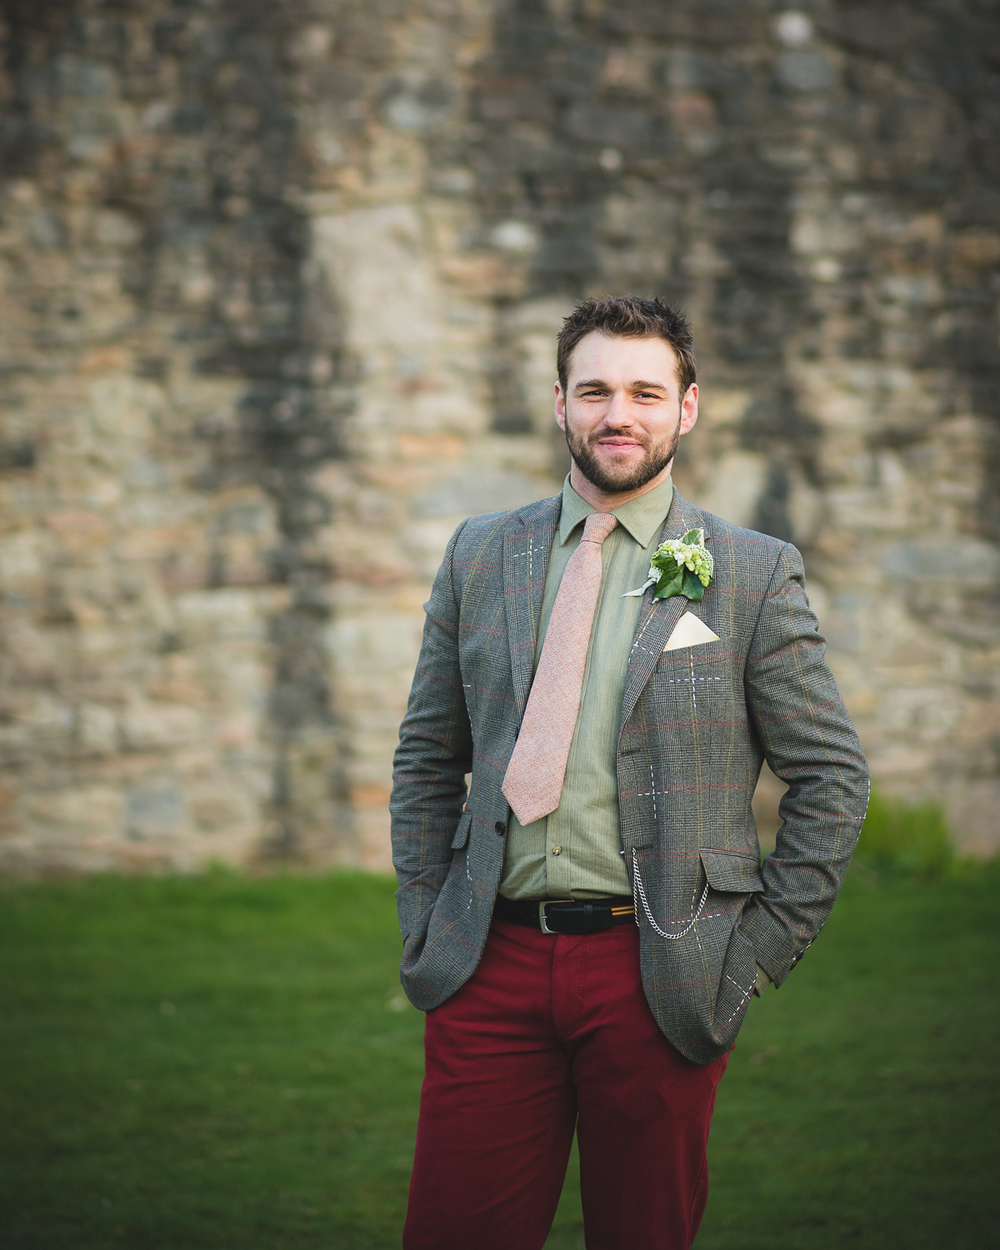 wedding-photographer-bristol-walton-castle-64.jpg